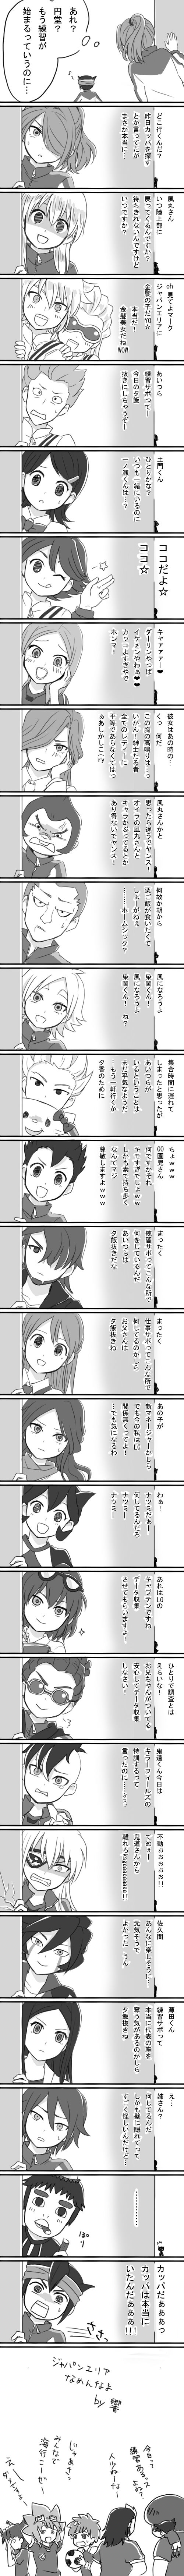 don't know what this means but this is really cute. Can someone PLEASE translate IT WOULD MEAN ALOTTTT